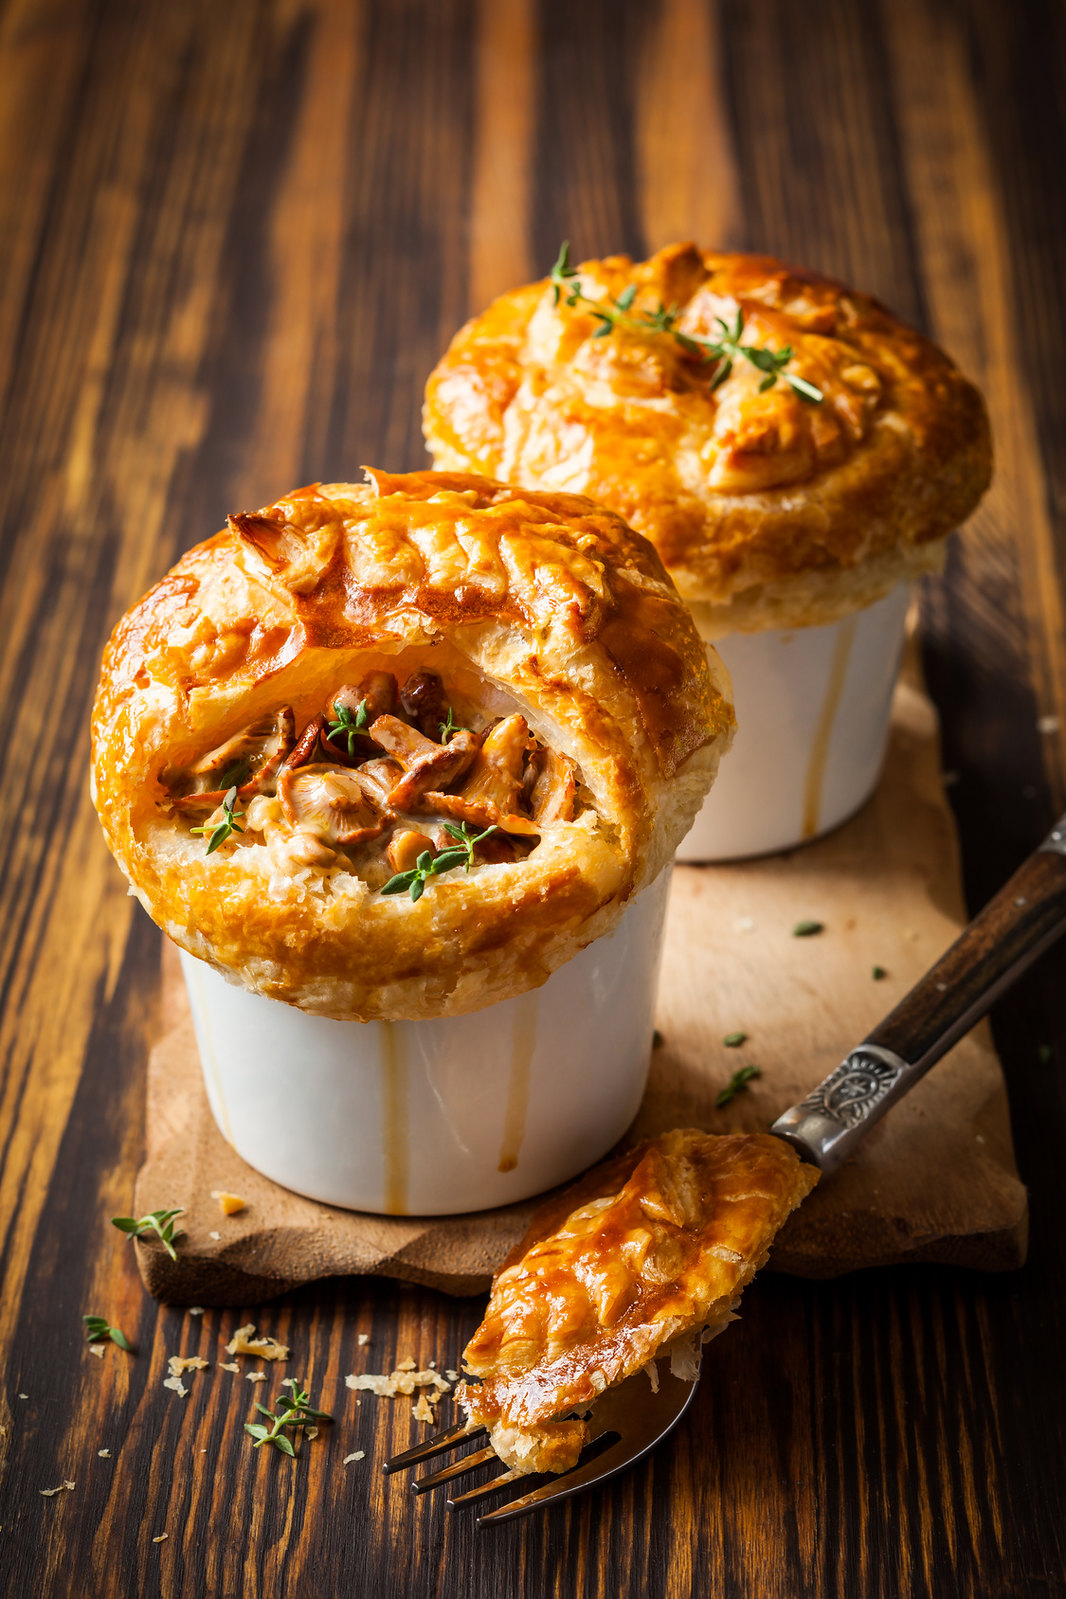 Rich Russian Chicken Pie With Cream Cheese | Tasty Canned Chicken Recipes That Are Easy to Whip | recipes using canned chicken breast